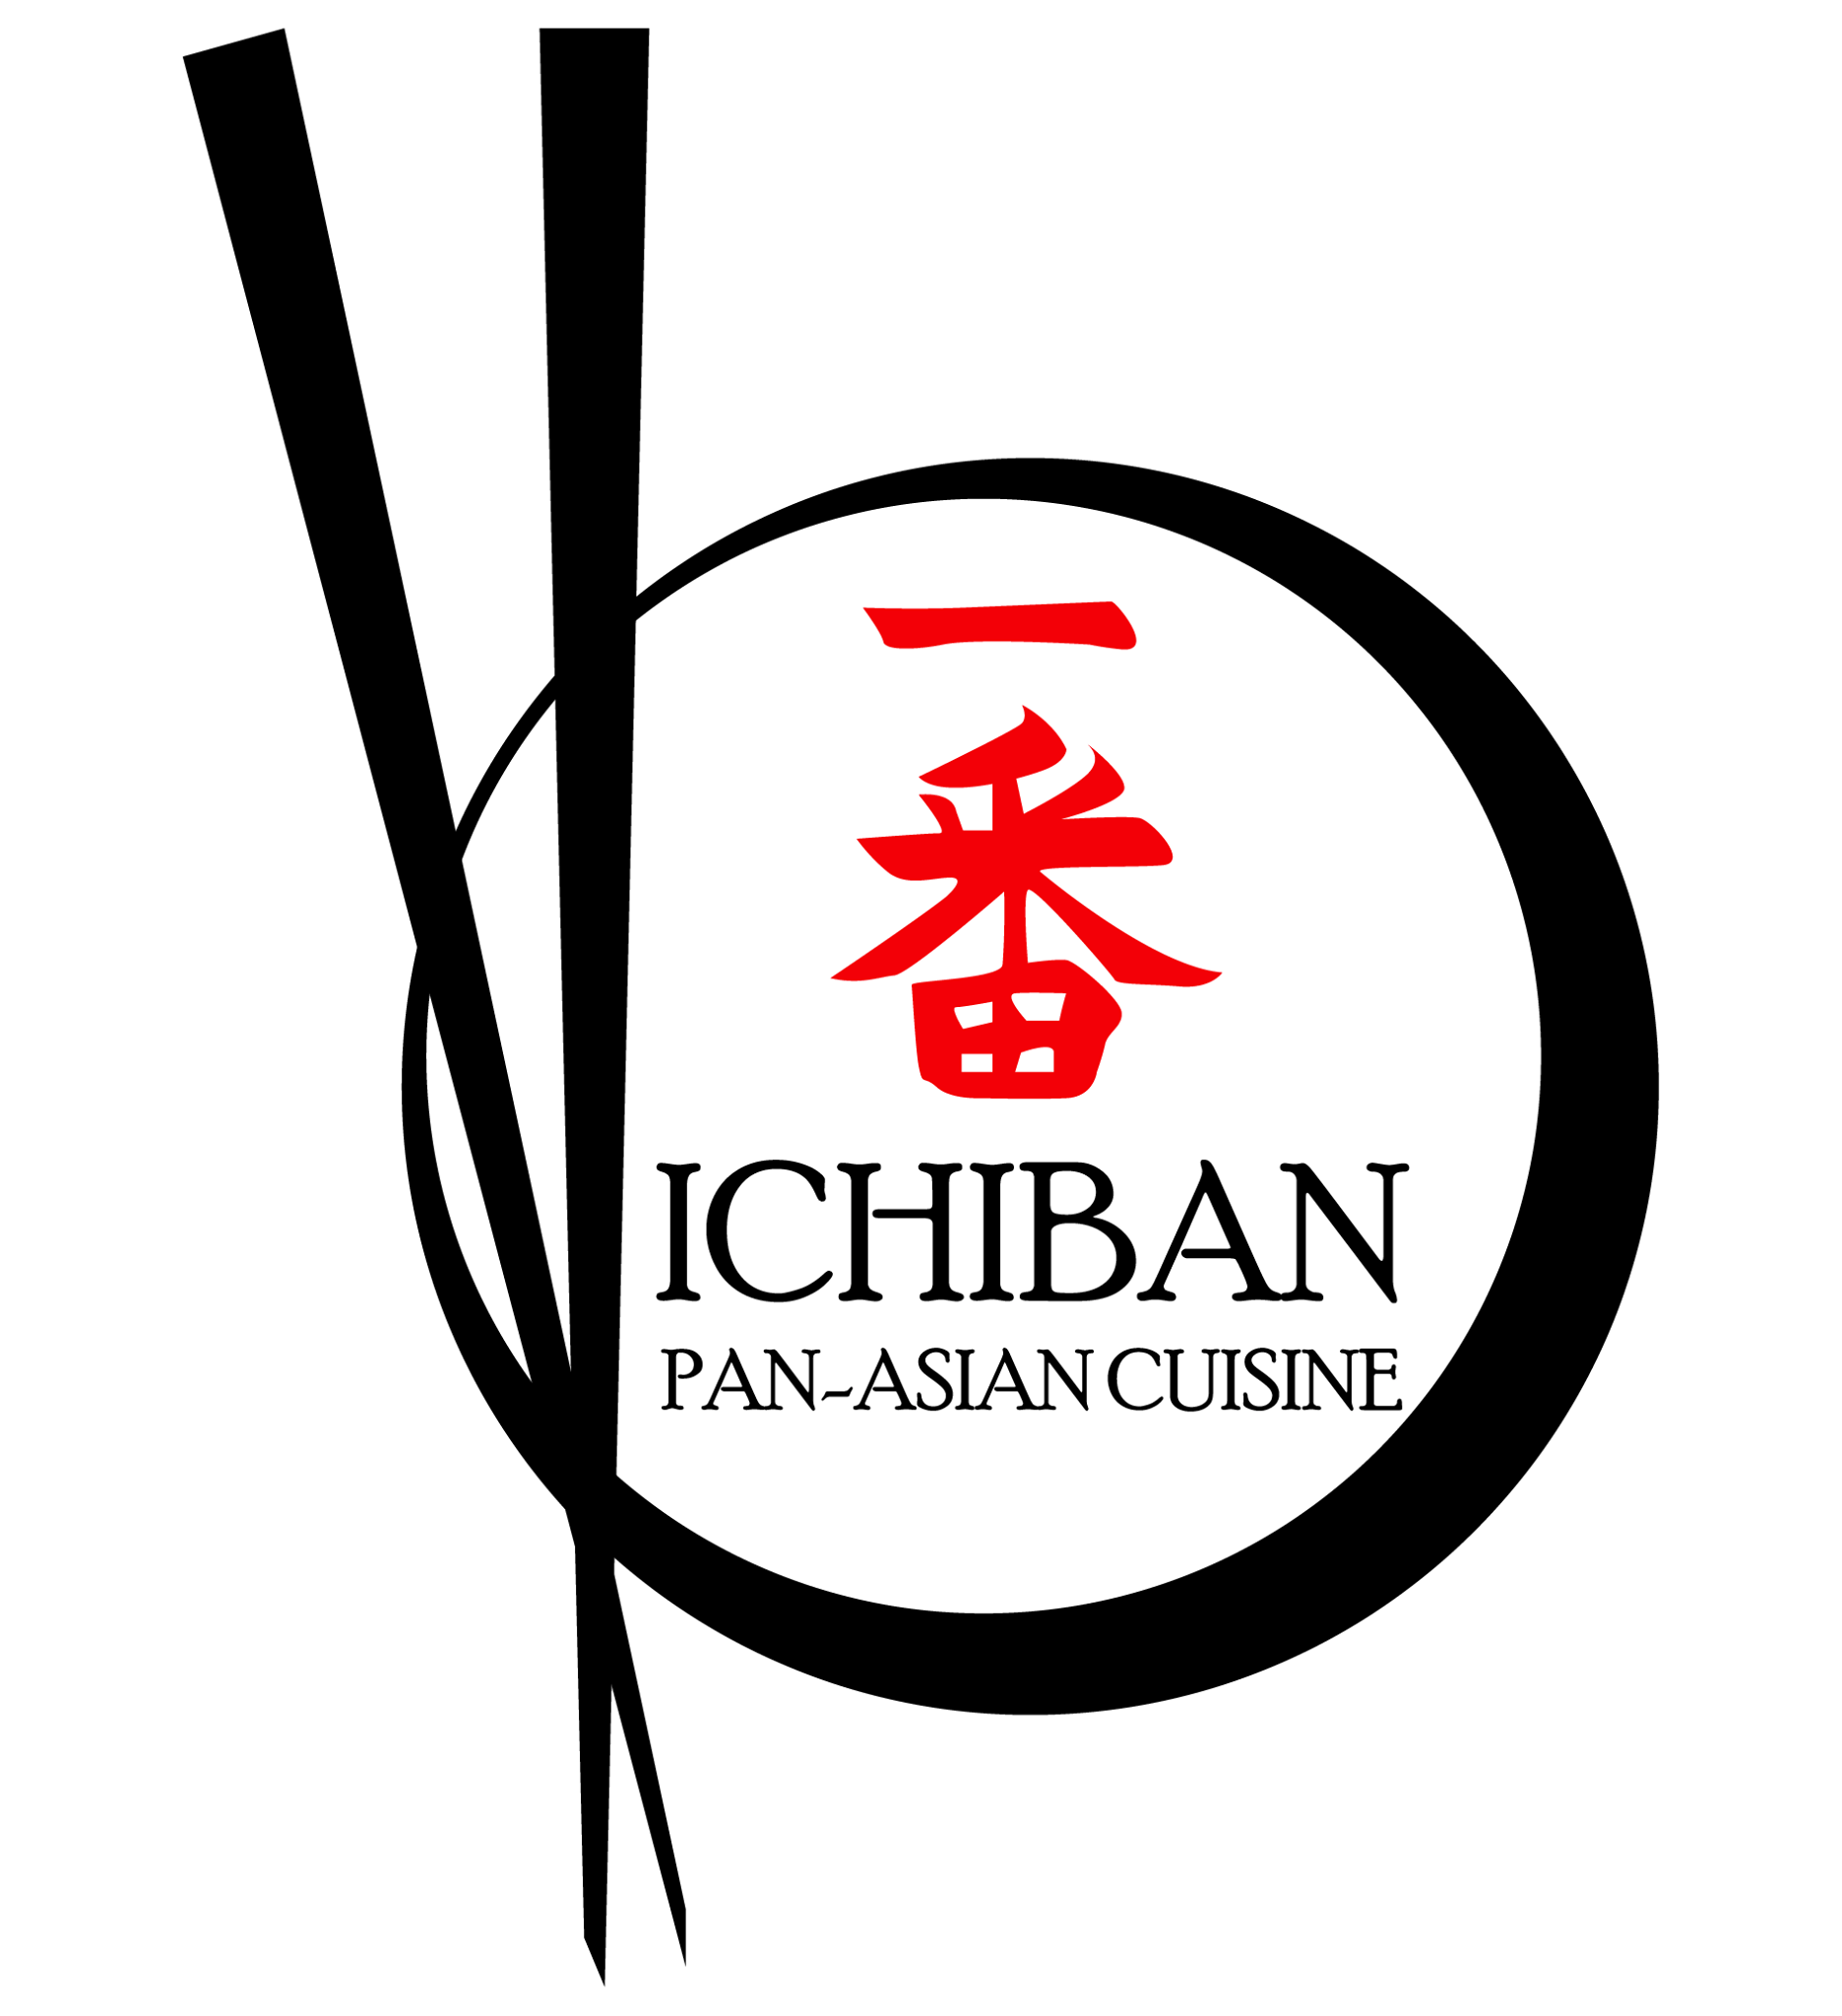 ichiban-pan-asian-cuisine-restaurant-logo-charleston-wv